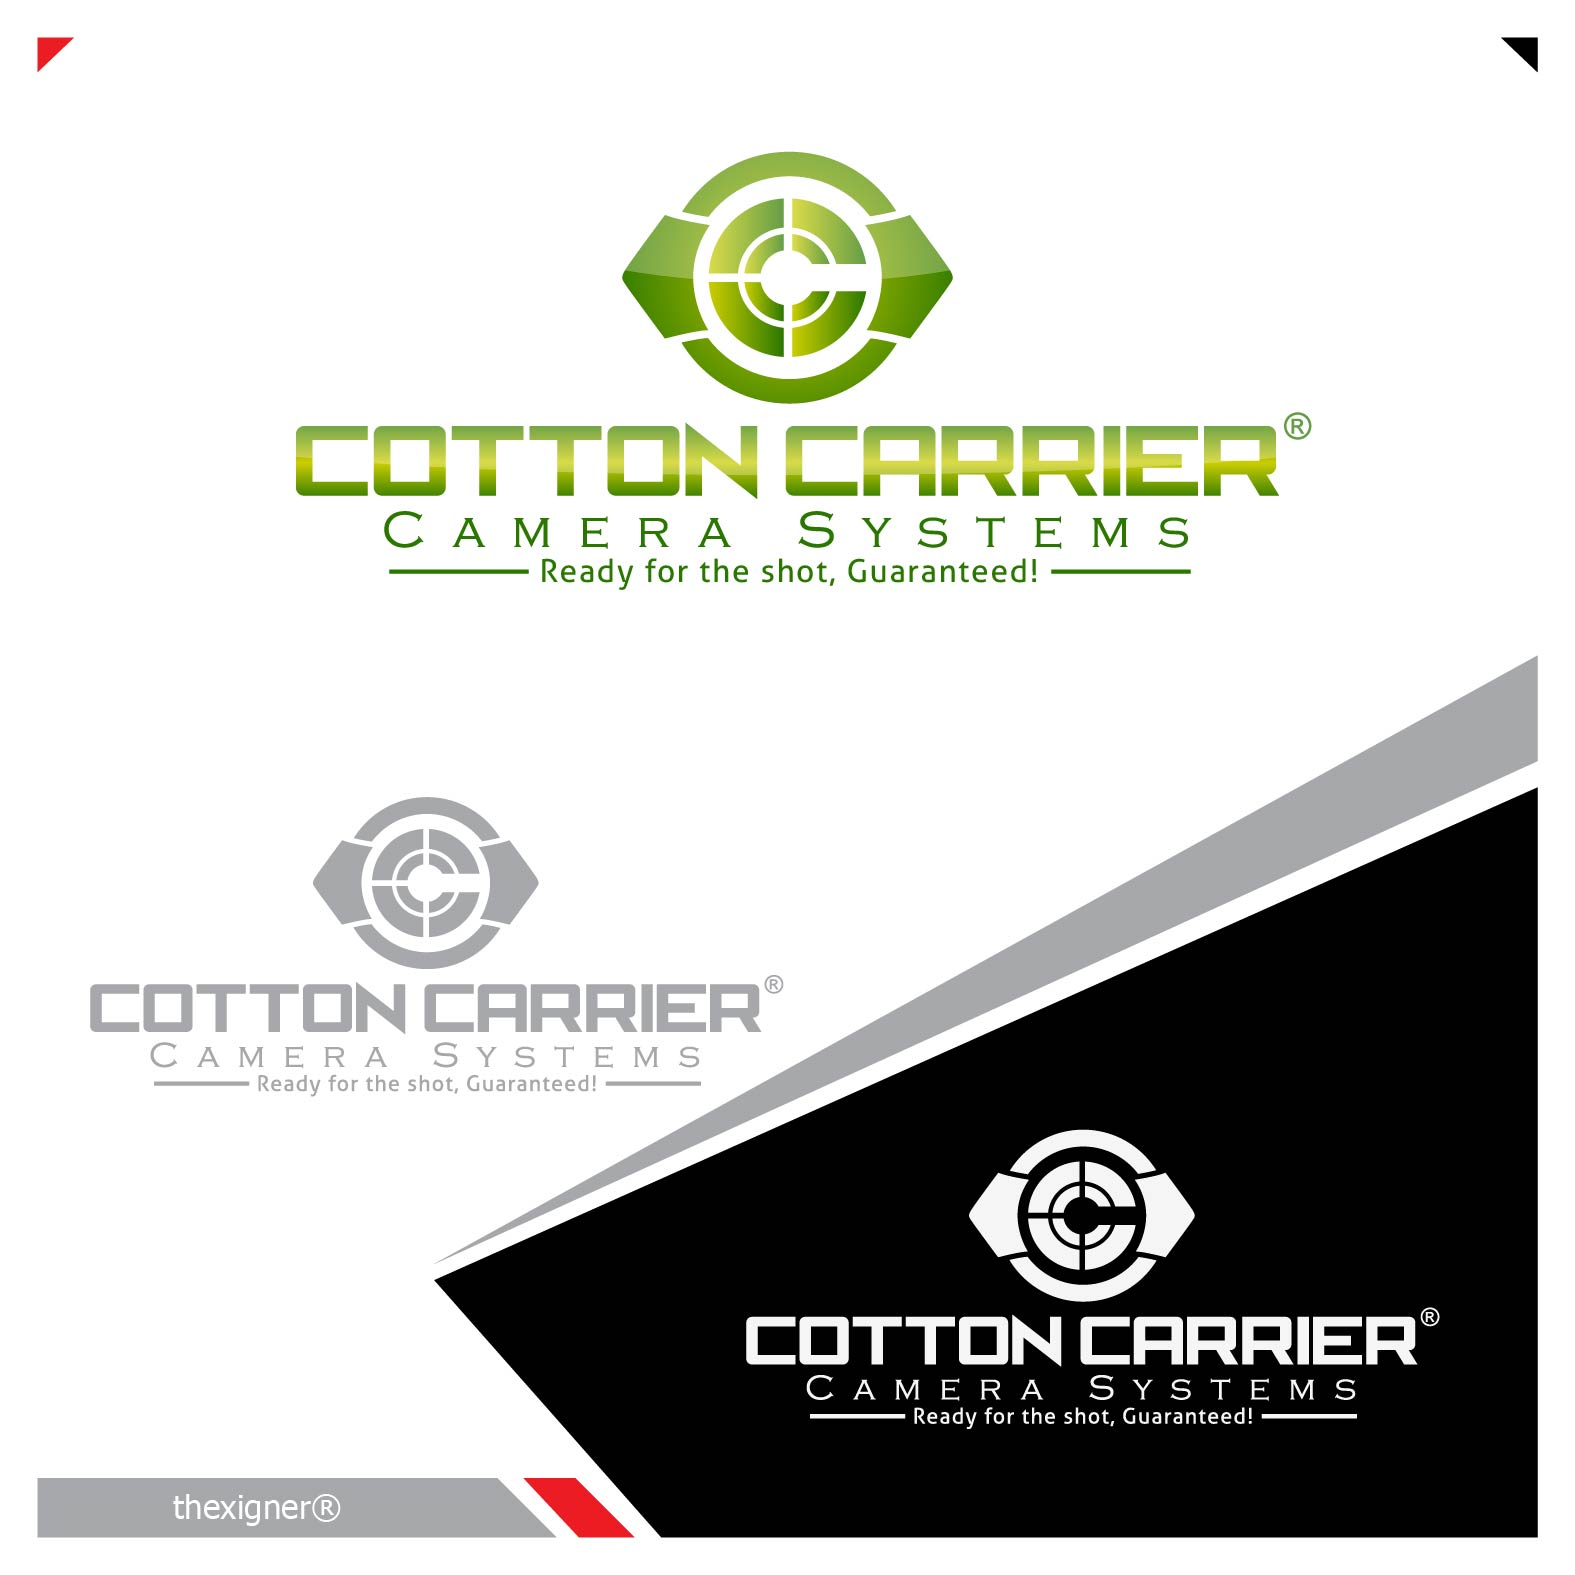 Logo Design by lagalag - Entry No. 24 in the Logo Design Contest Cotton Carrier Camera Systems Logo Design.